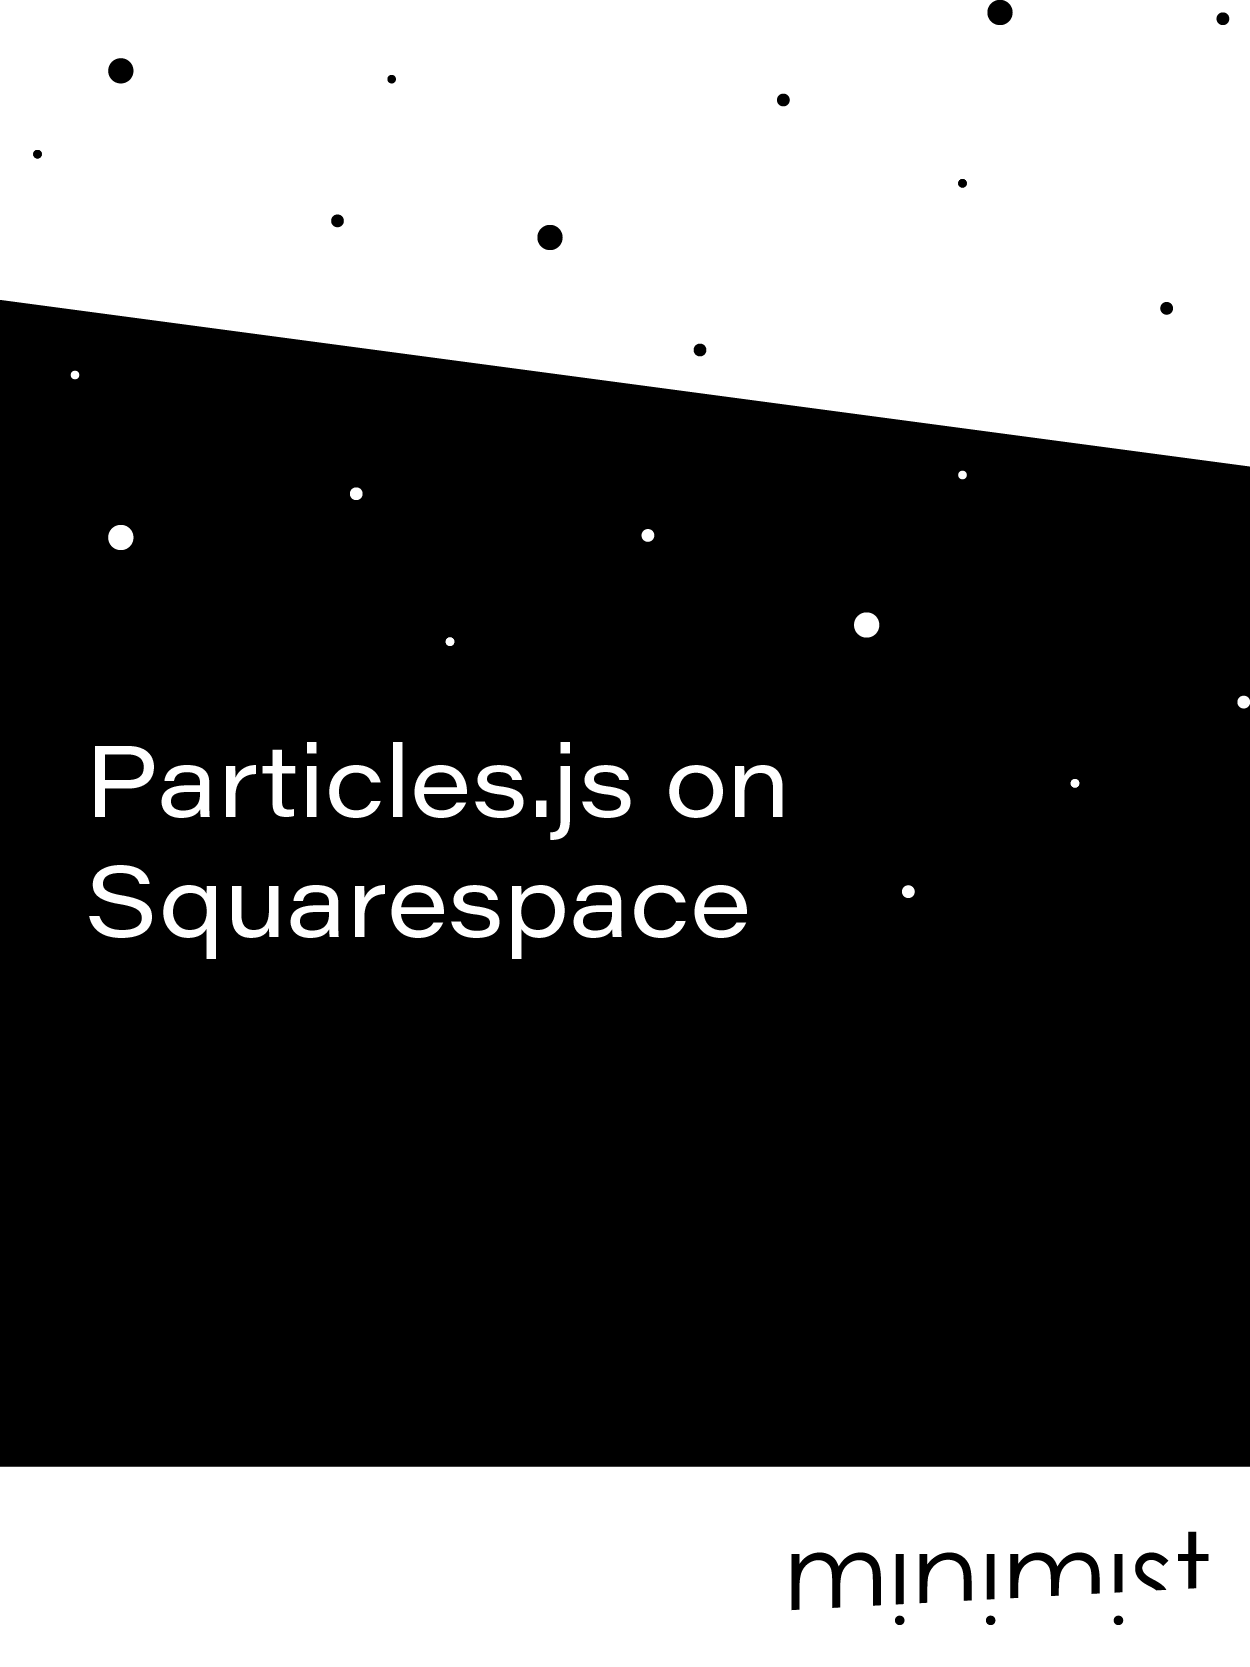 Particles.js on Squarespace